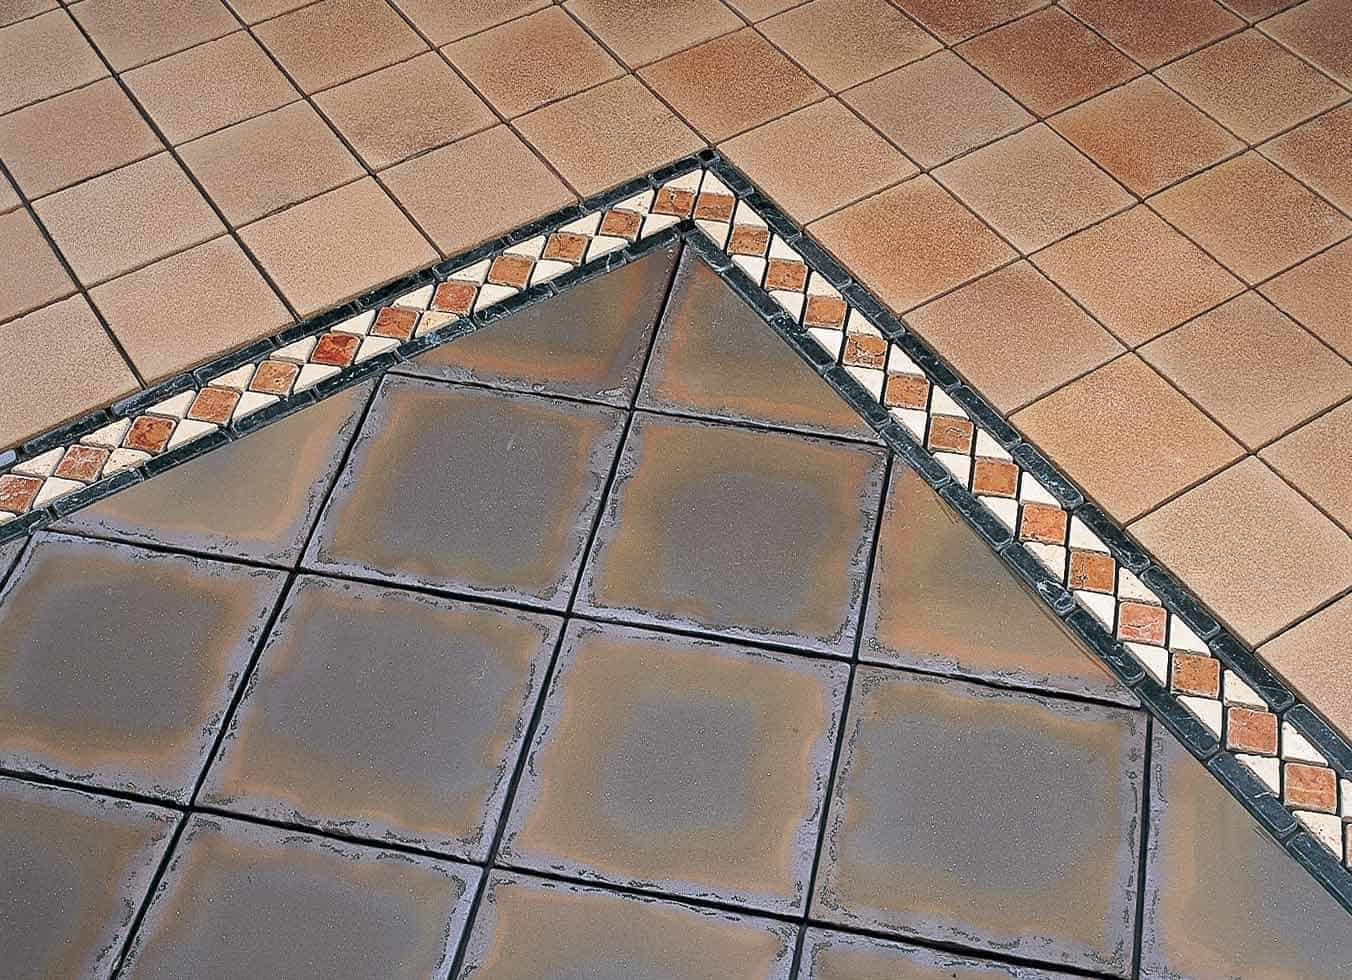 Outdoor floor tiles design 1 contemporary tile design magazine outdoor floor tiles design 1 dailygadgetfo Images